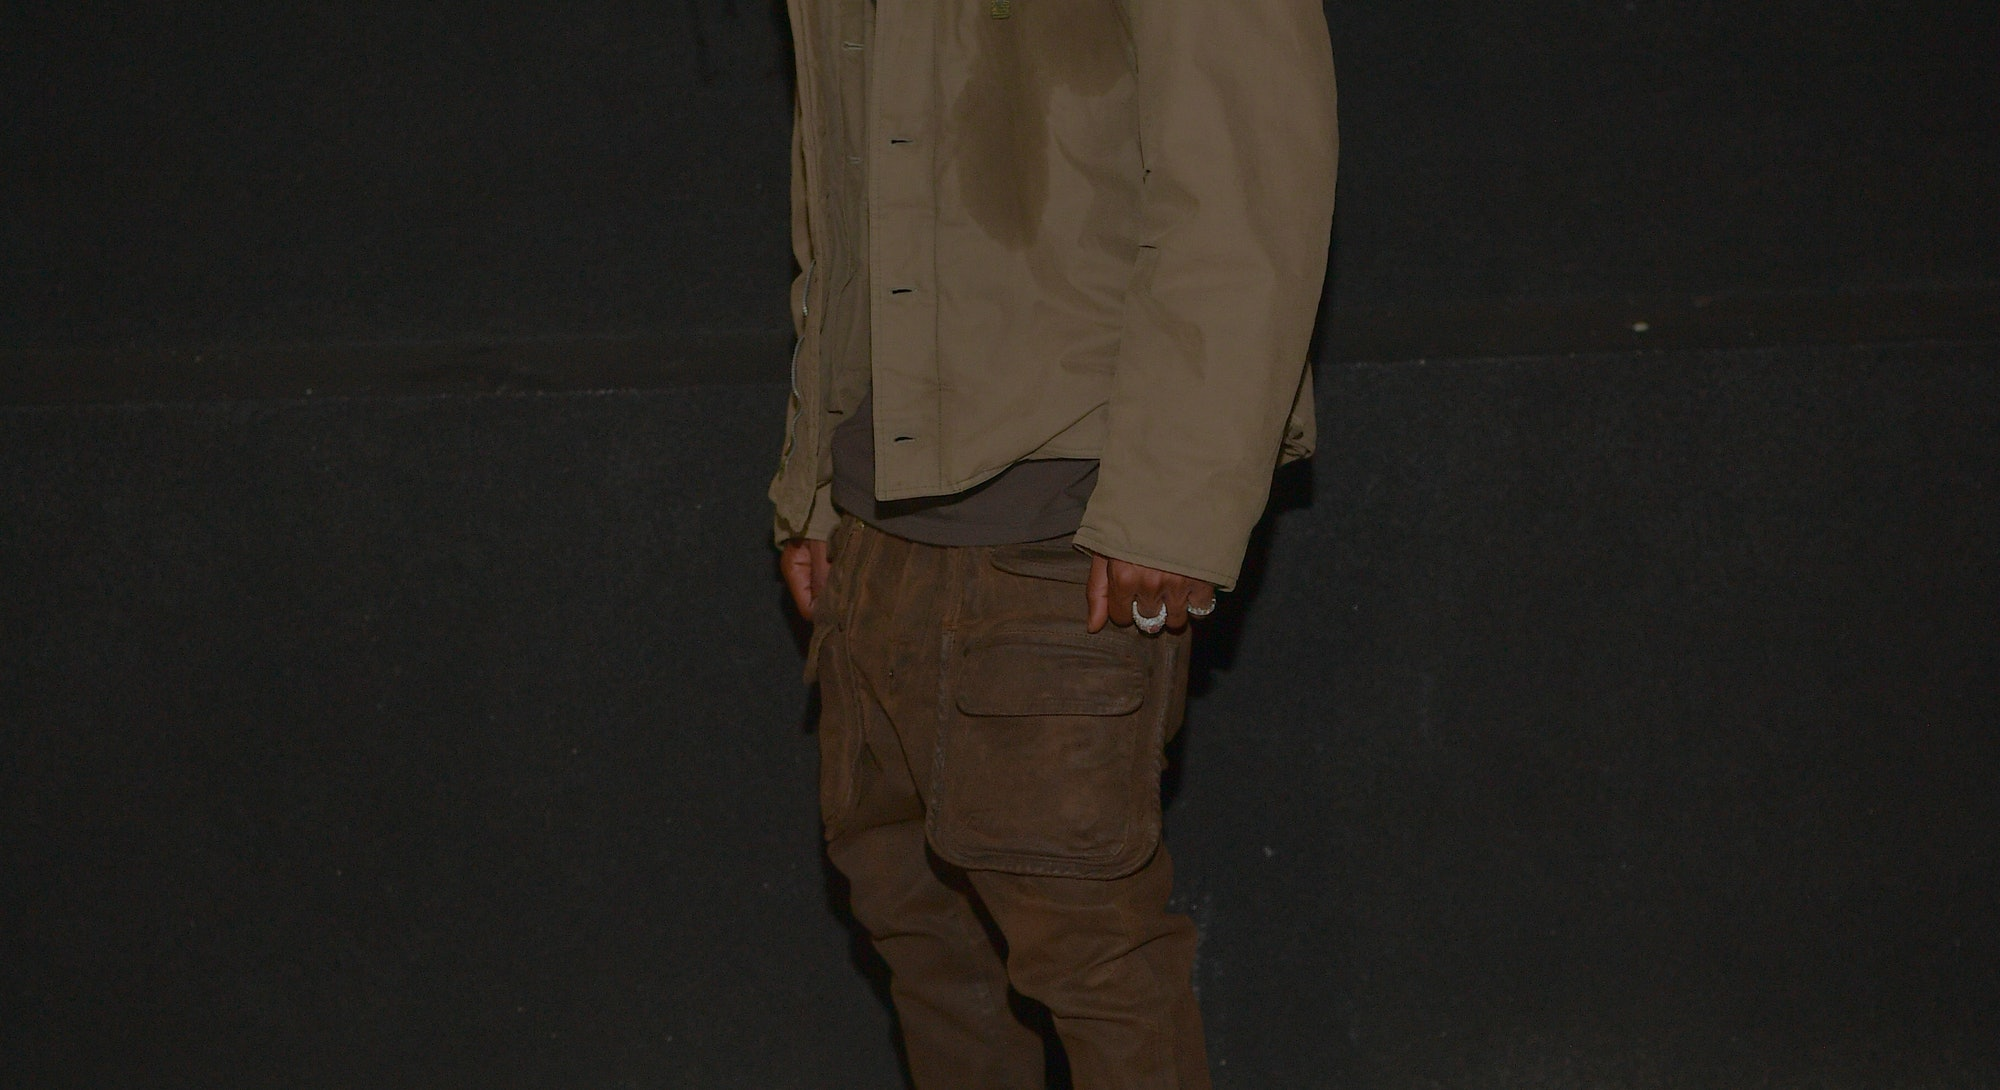 """ATLANTA, GA - OCTOBER 08: (EXCLUSIVE COVERAGE) Travis Scott attends the Travis Scott """"Franchise"""" celebration event at Republic Lounge on October 8, 2020 in Atlanta, Georgia.(Photo by Prince Williams/Wireimage)"""